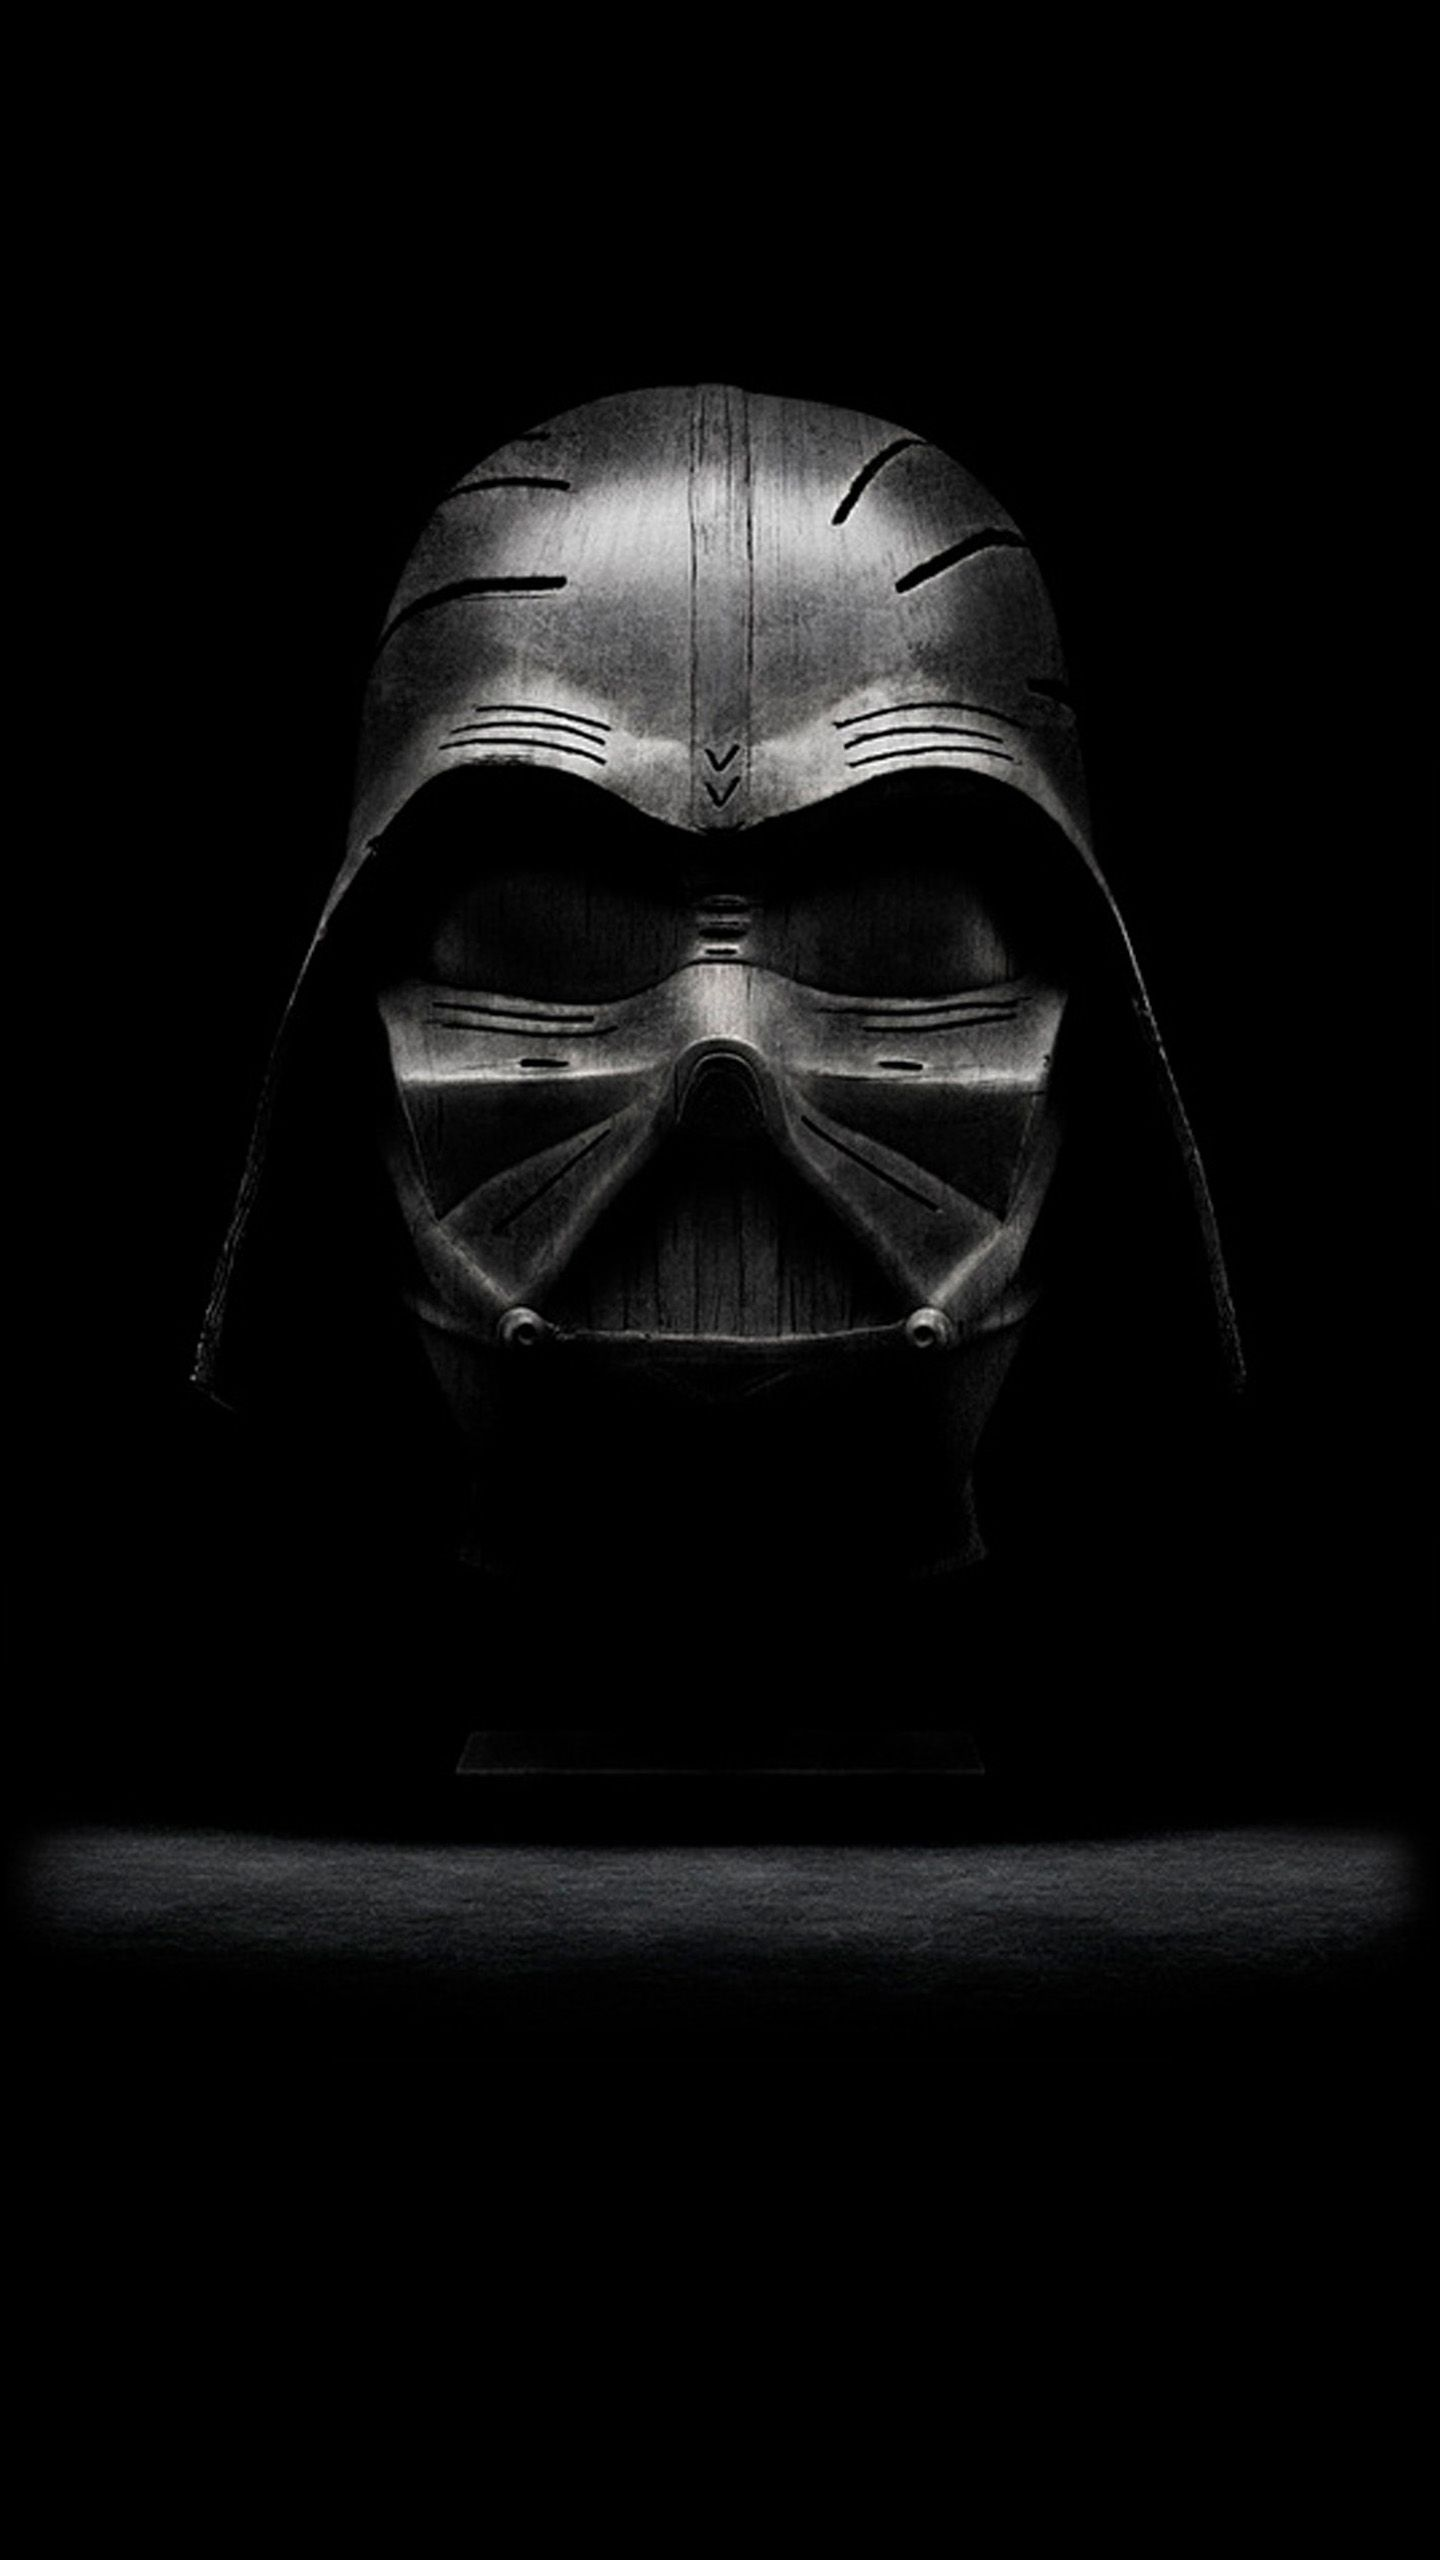 Star Wars Darth Vader Wallpapers Wallpaper